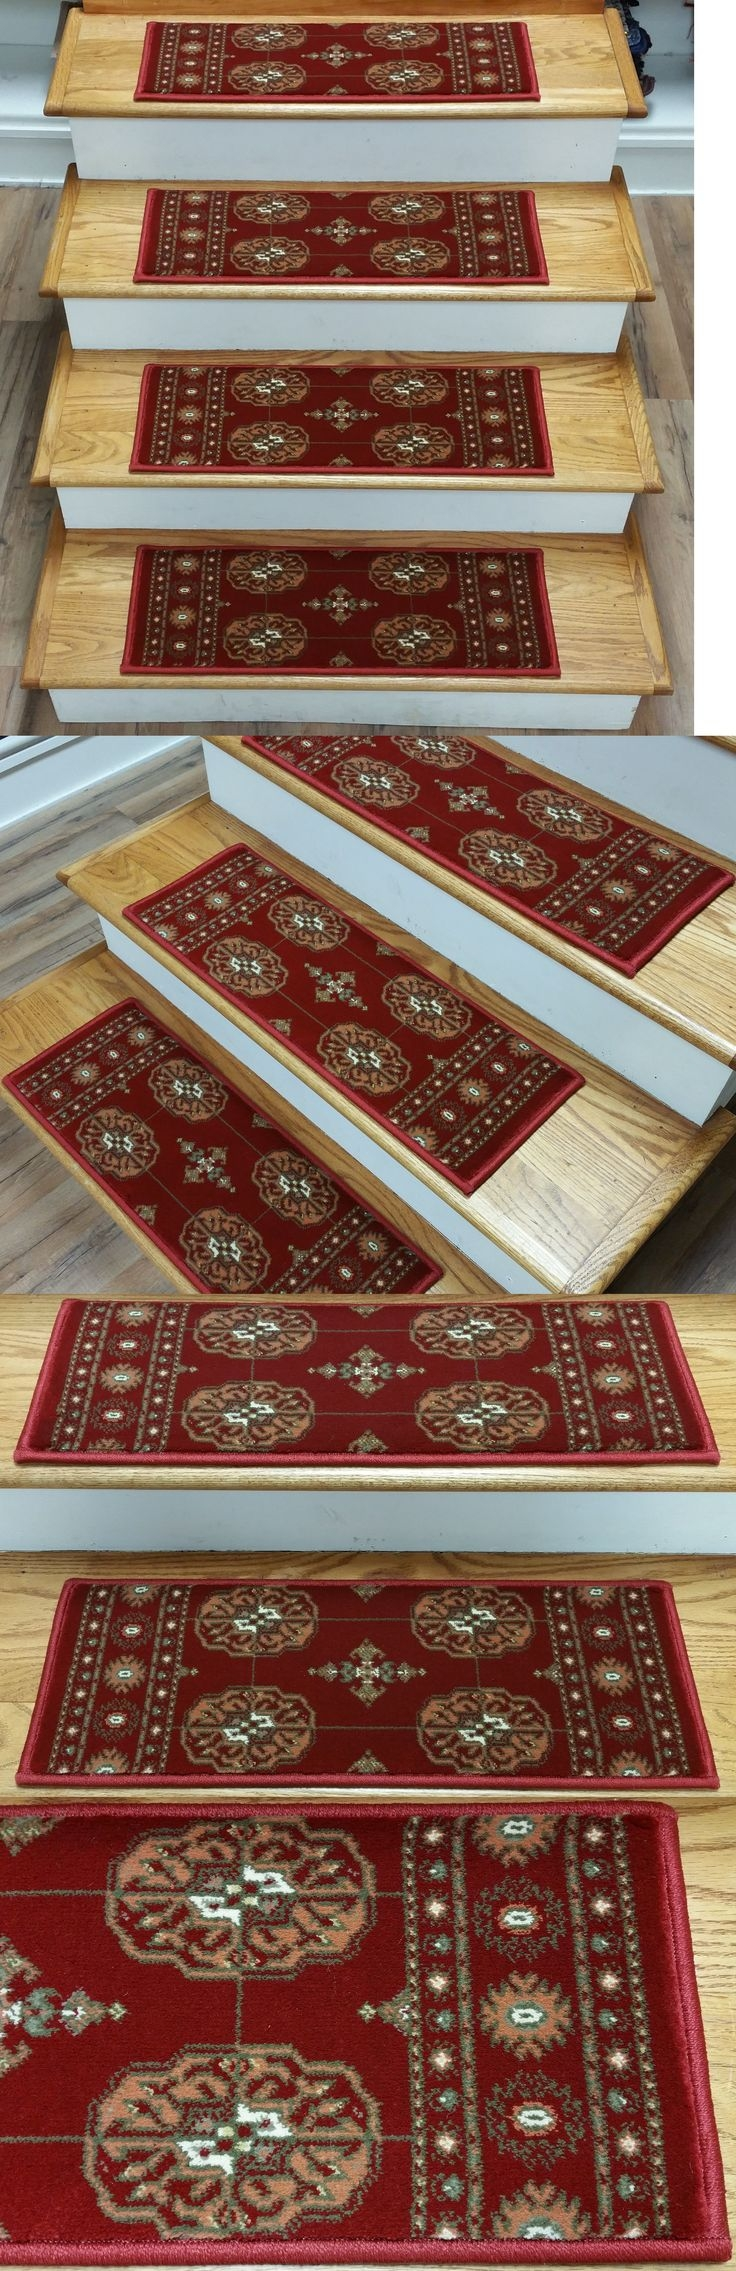 Elegant Best 20 Stair Tread Rugs Ideas On Pinterest Carpet Stair Treads With Regard  To Country Stair